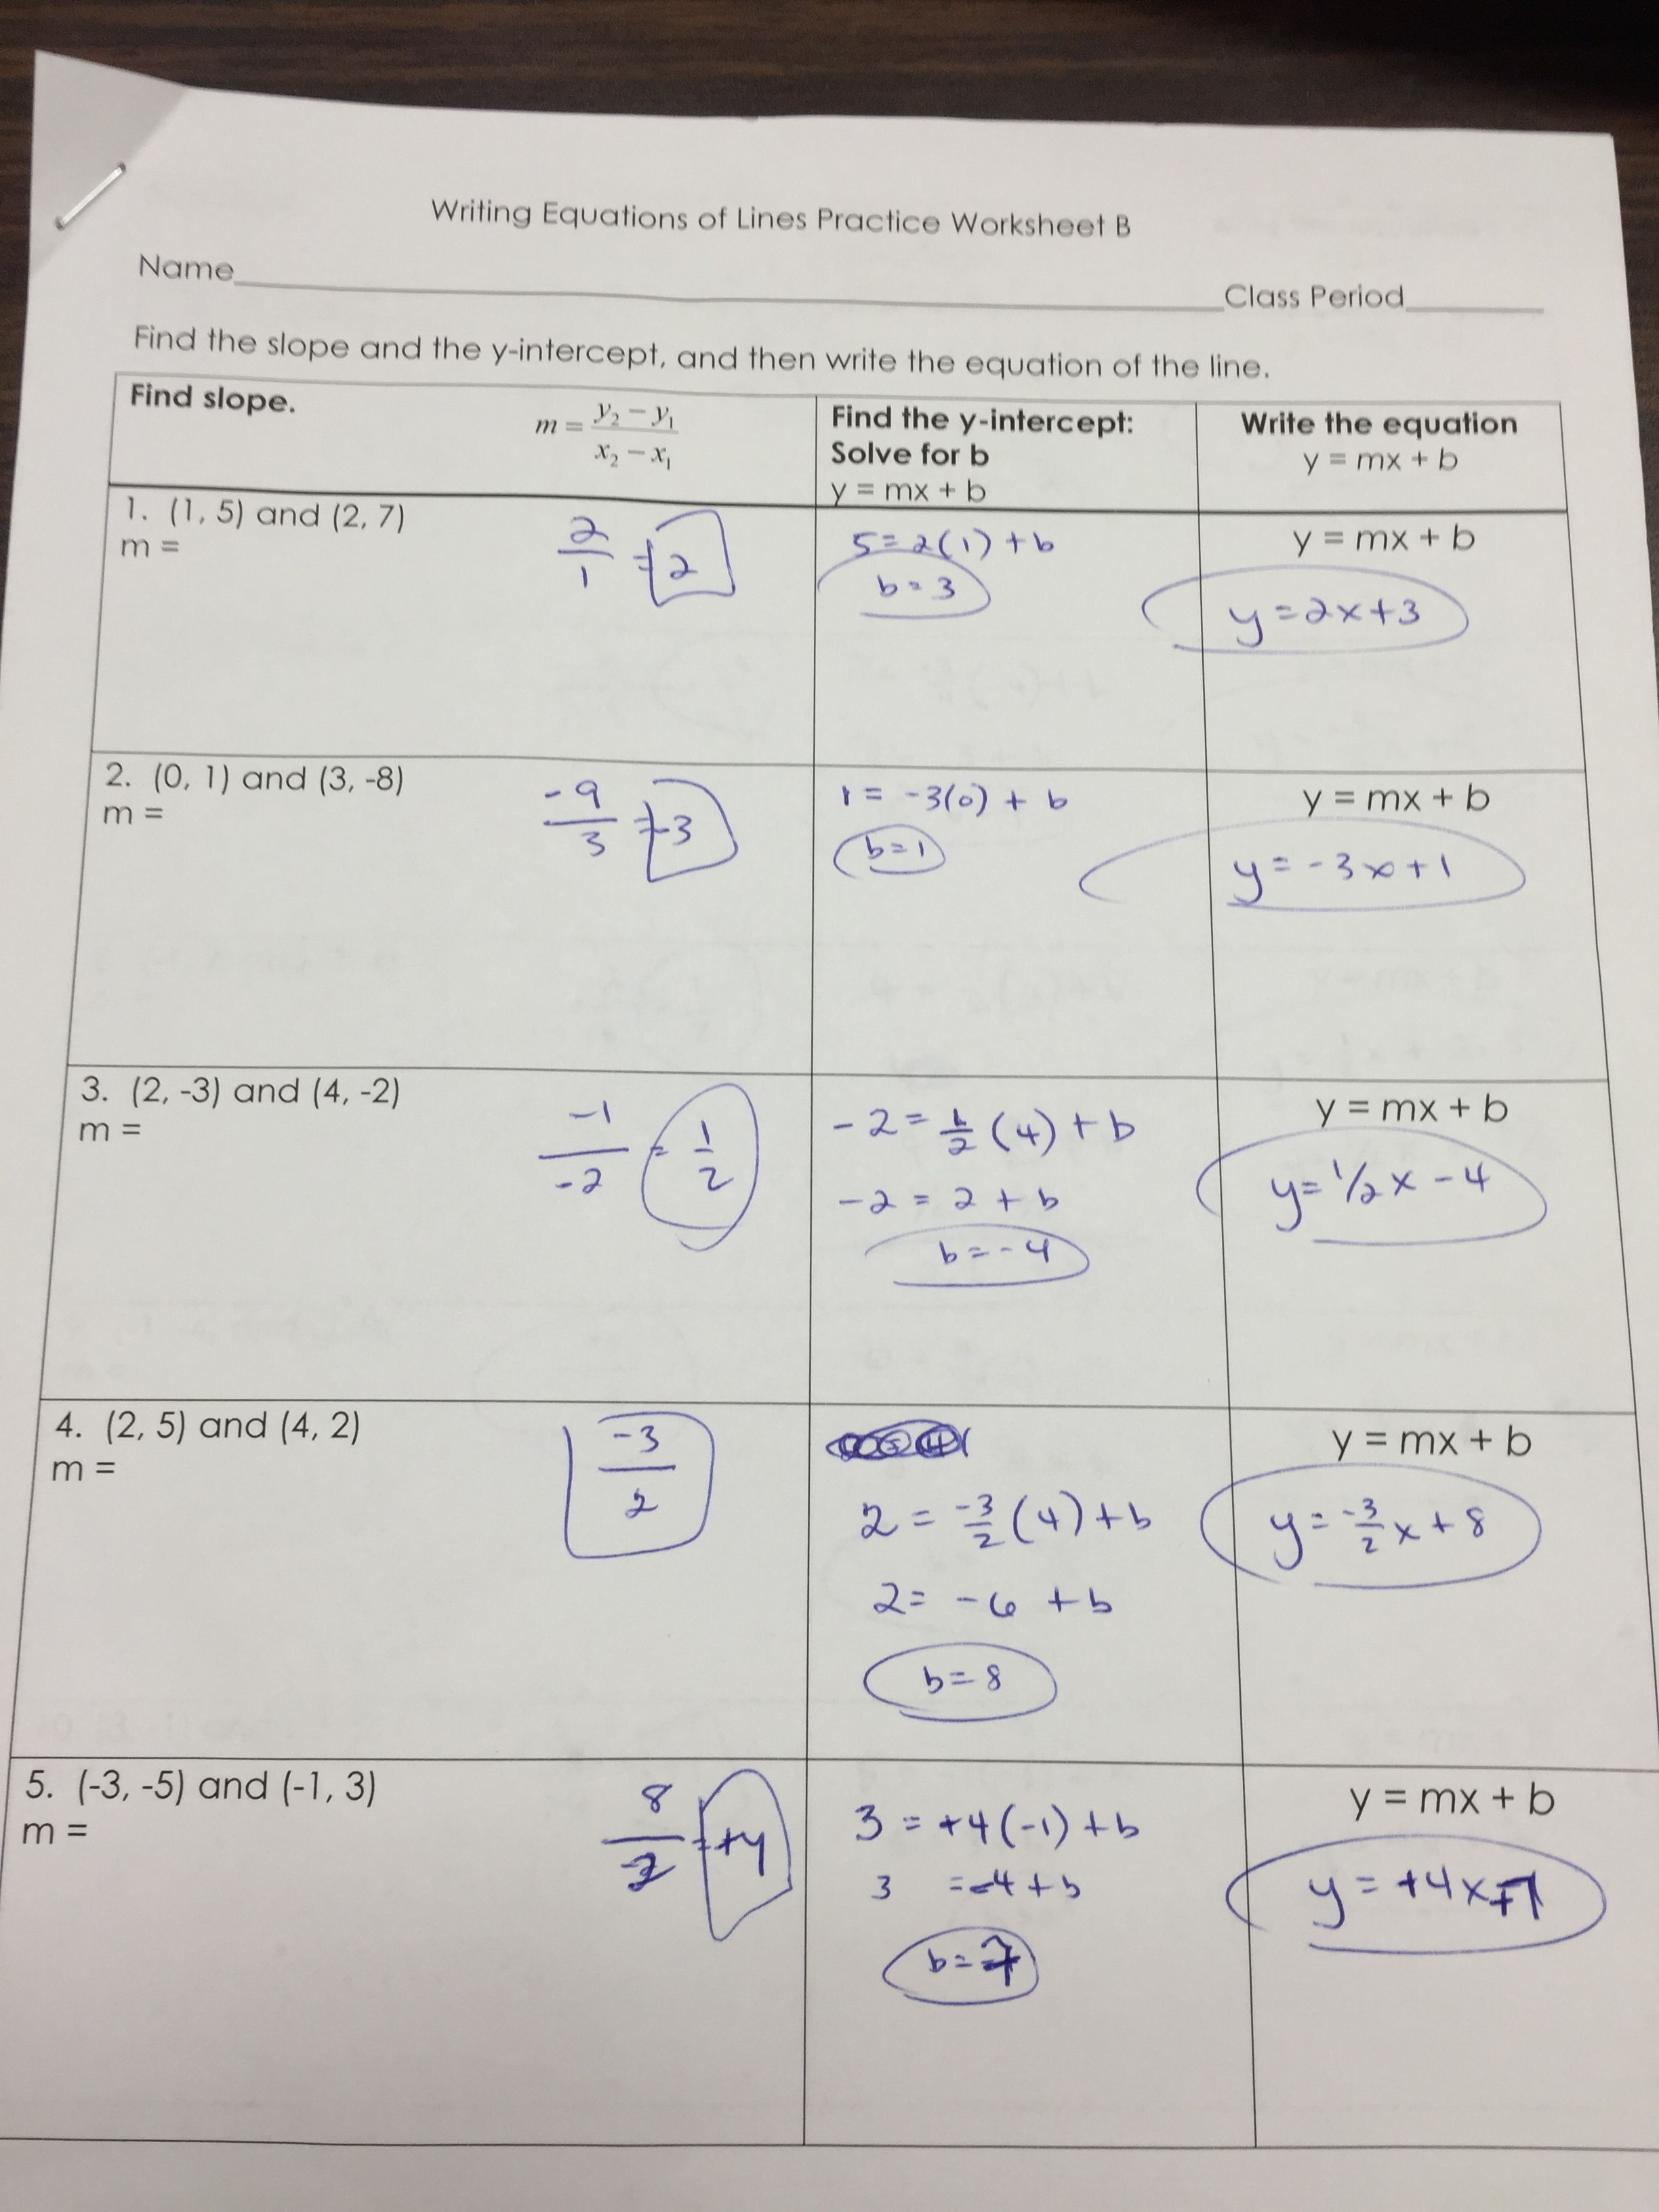 Unit 6 - Coordinate Algebra